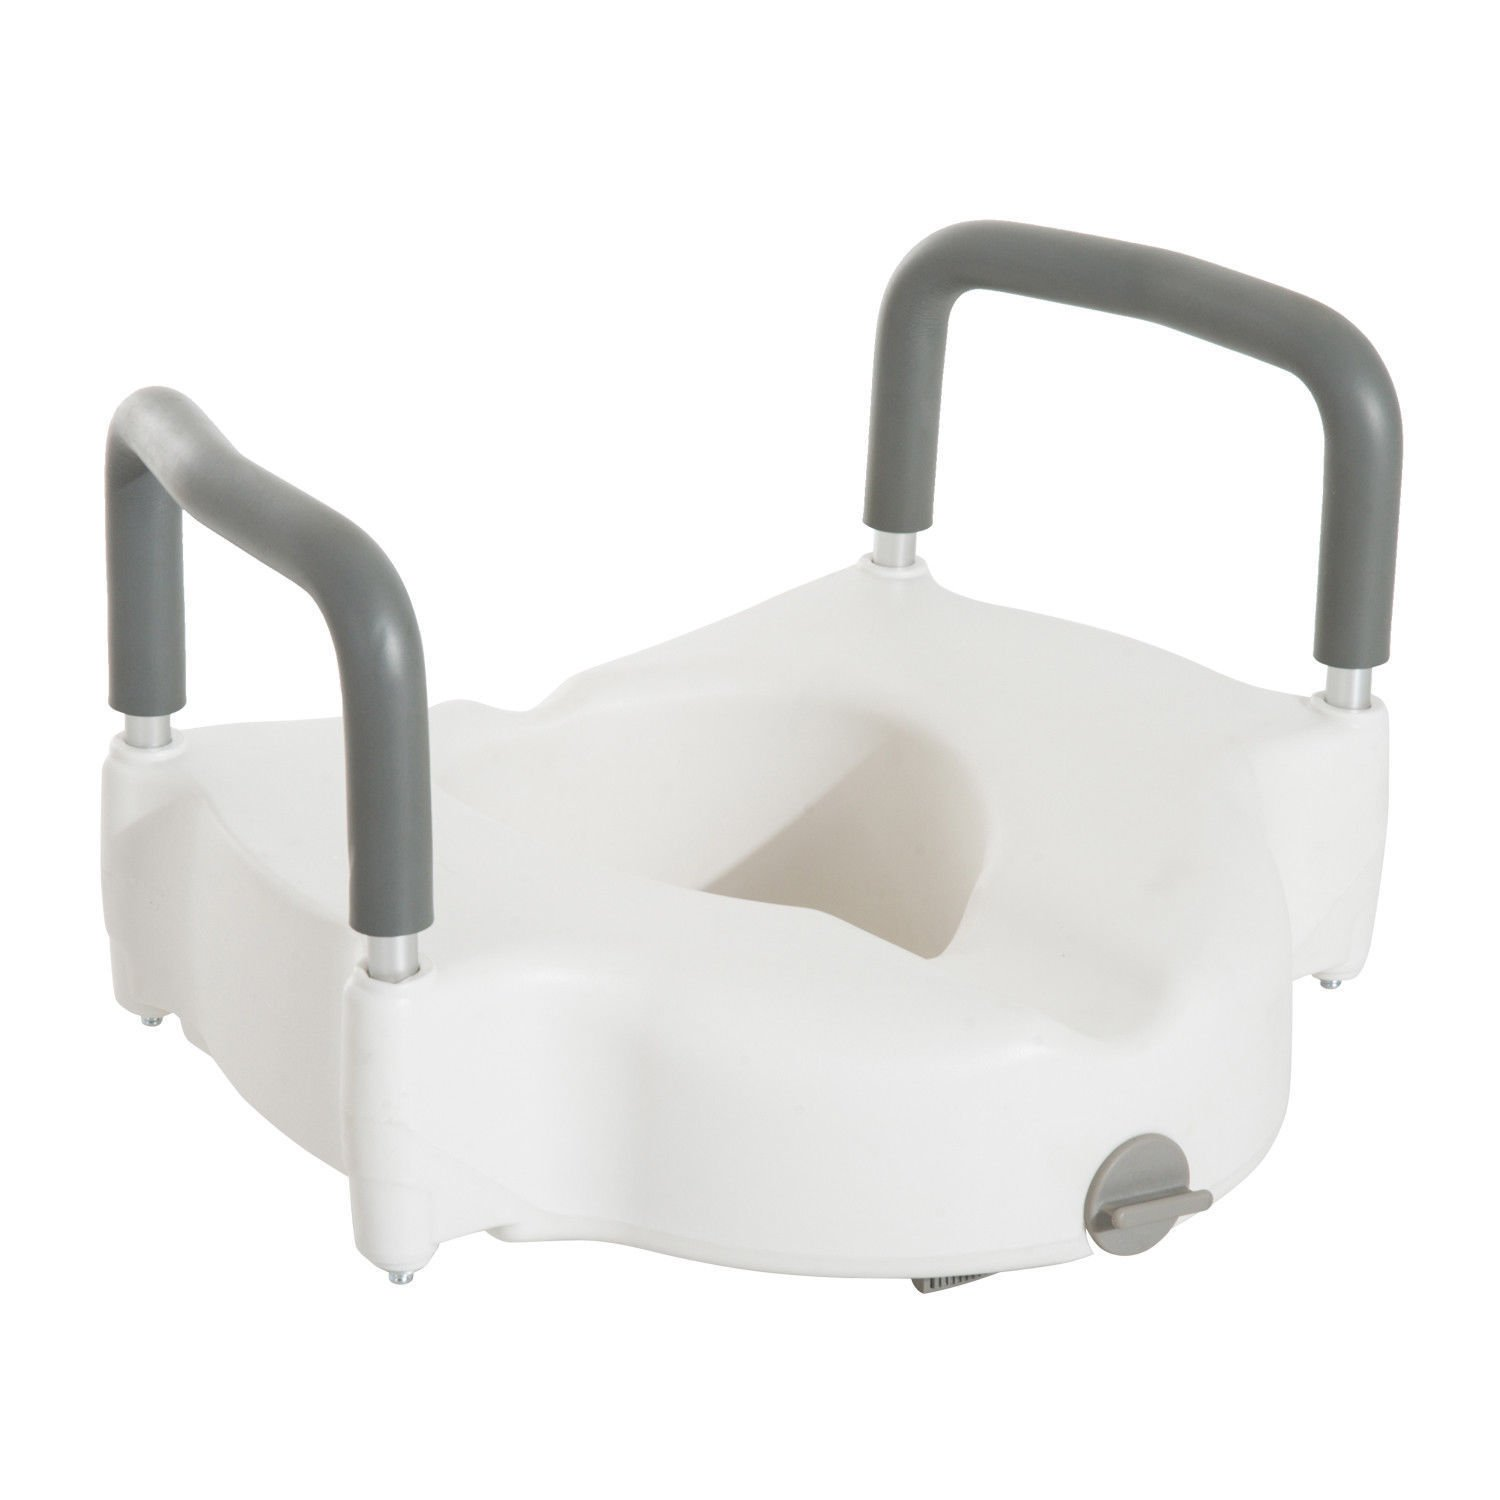 HOMCOM Medical Assist Lightweight Locking Raised Toilet Seat With Removable Arms